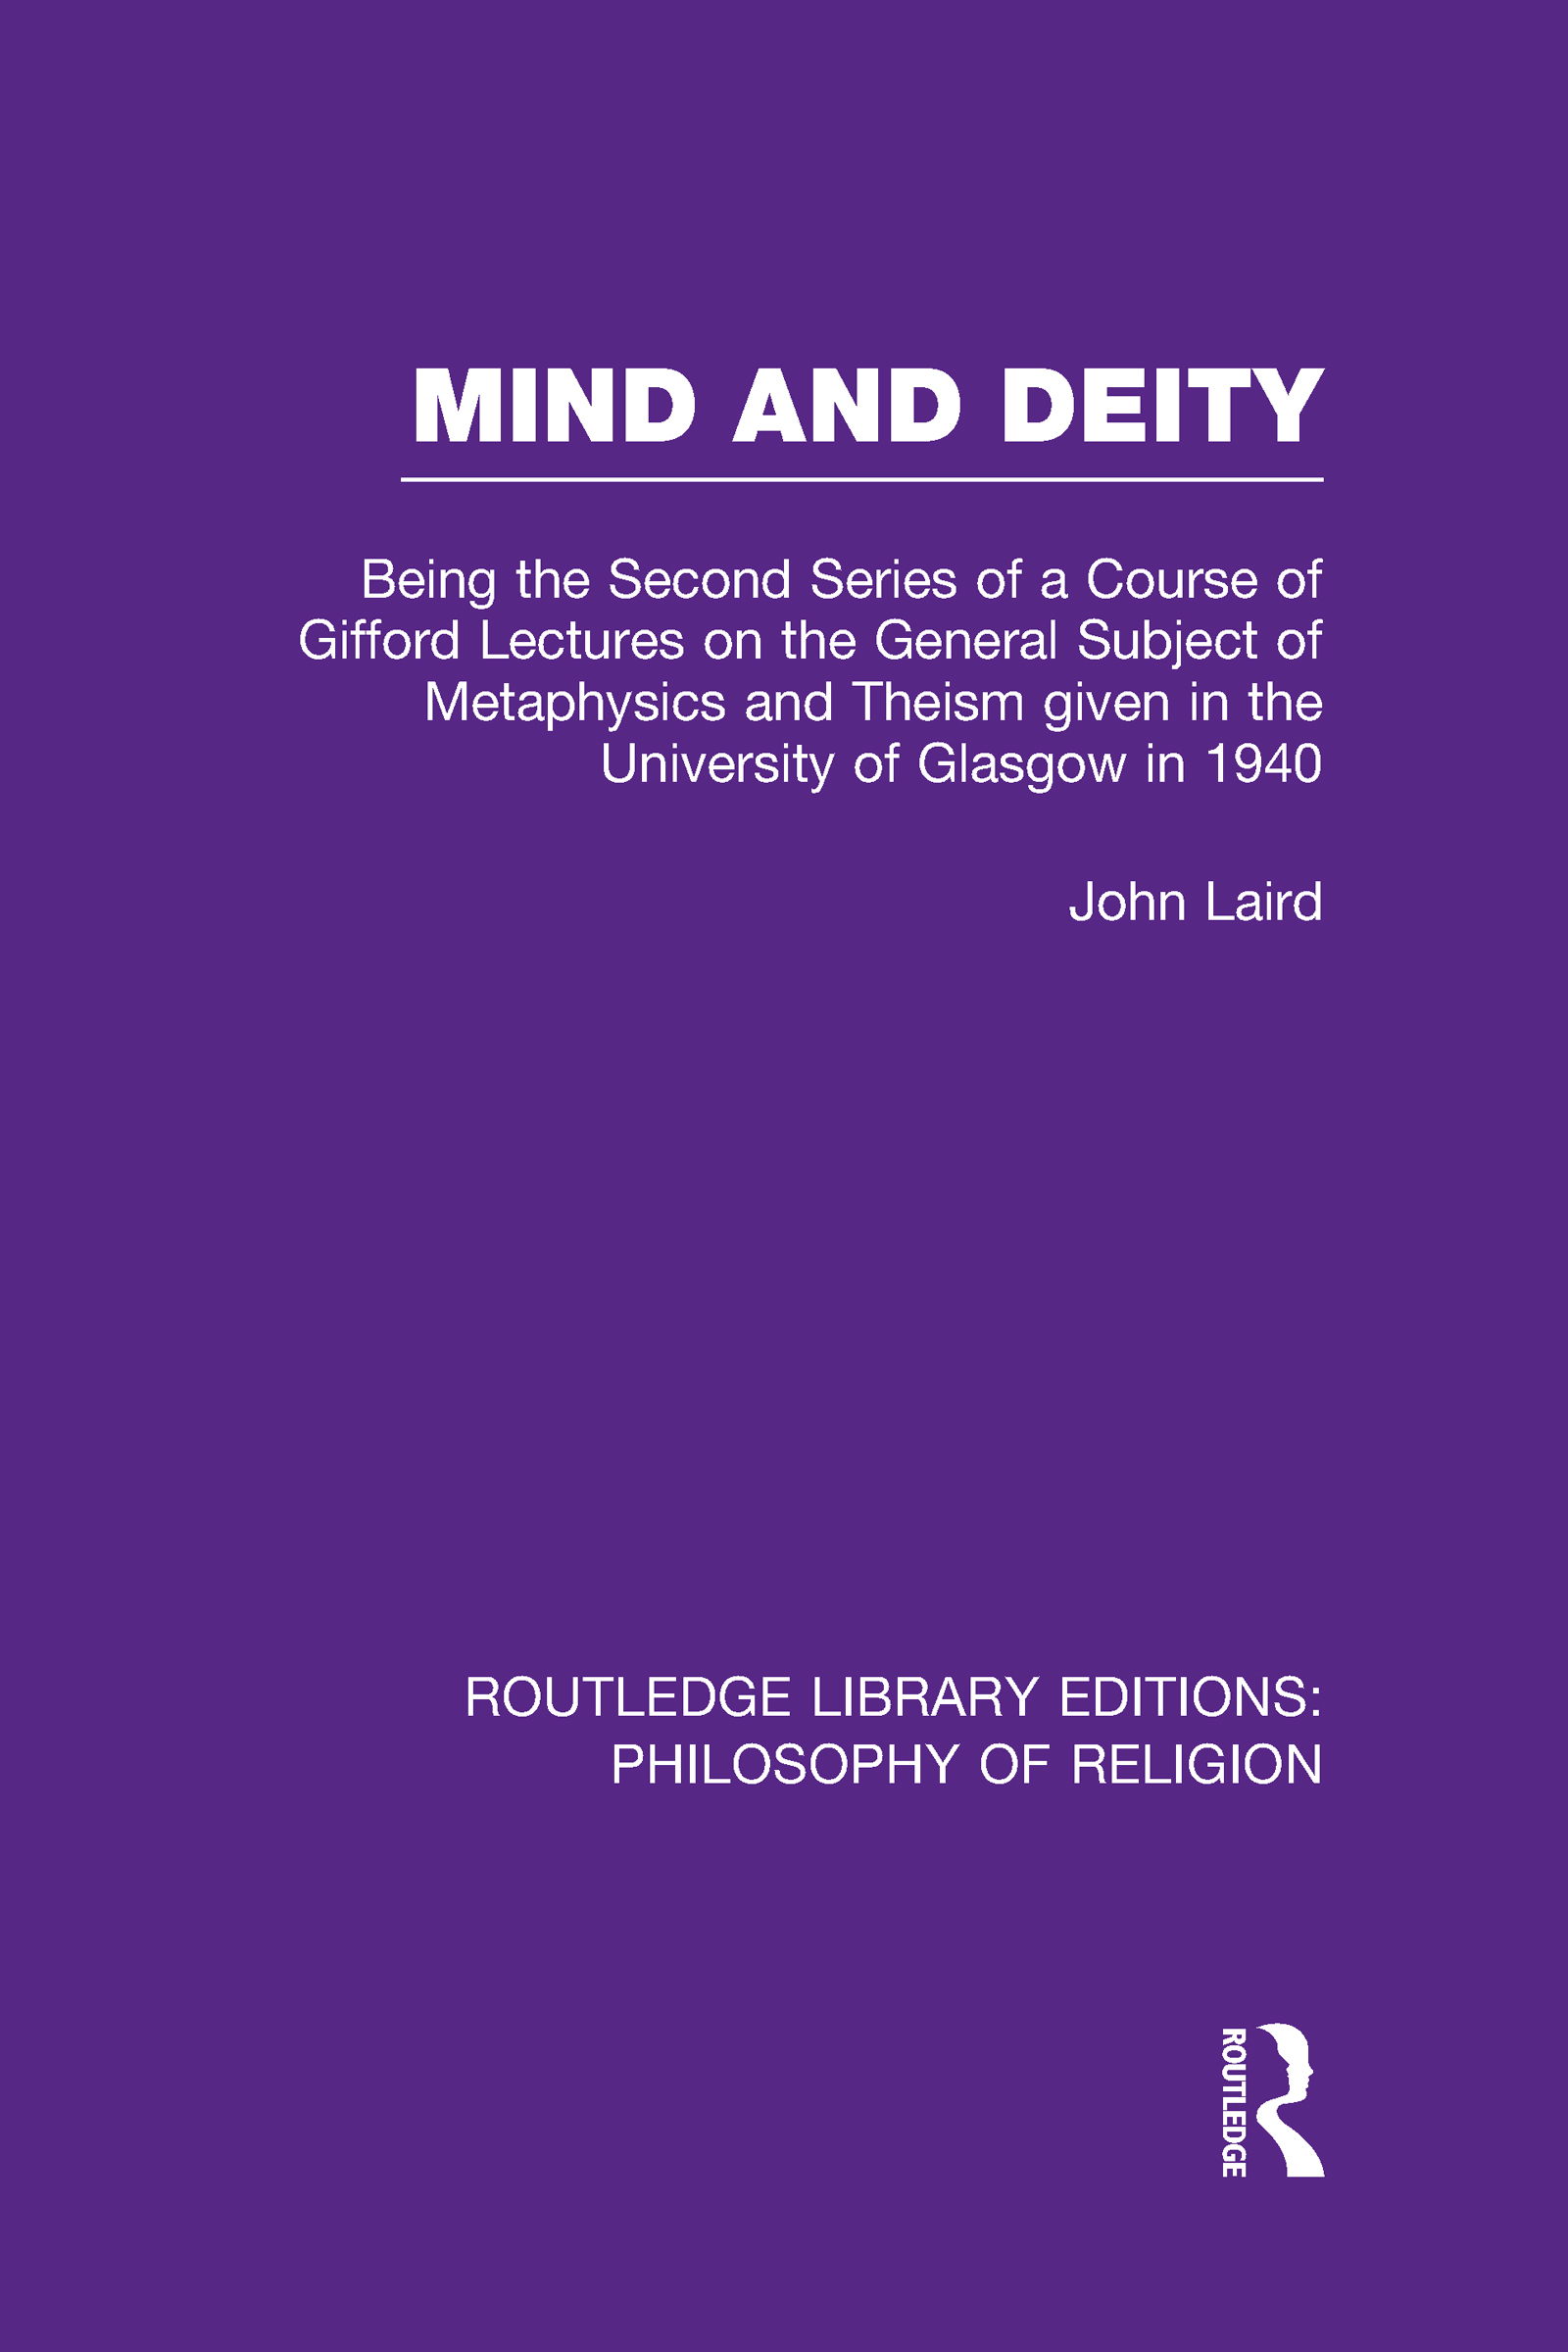 Mind and Deity: Being the Second Series of a Course of Gifford Lectures on the General Subject of Metaphysics and Theism given in the University of Glasgow in 1940 (Hardback) book cover